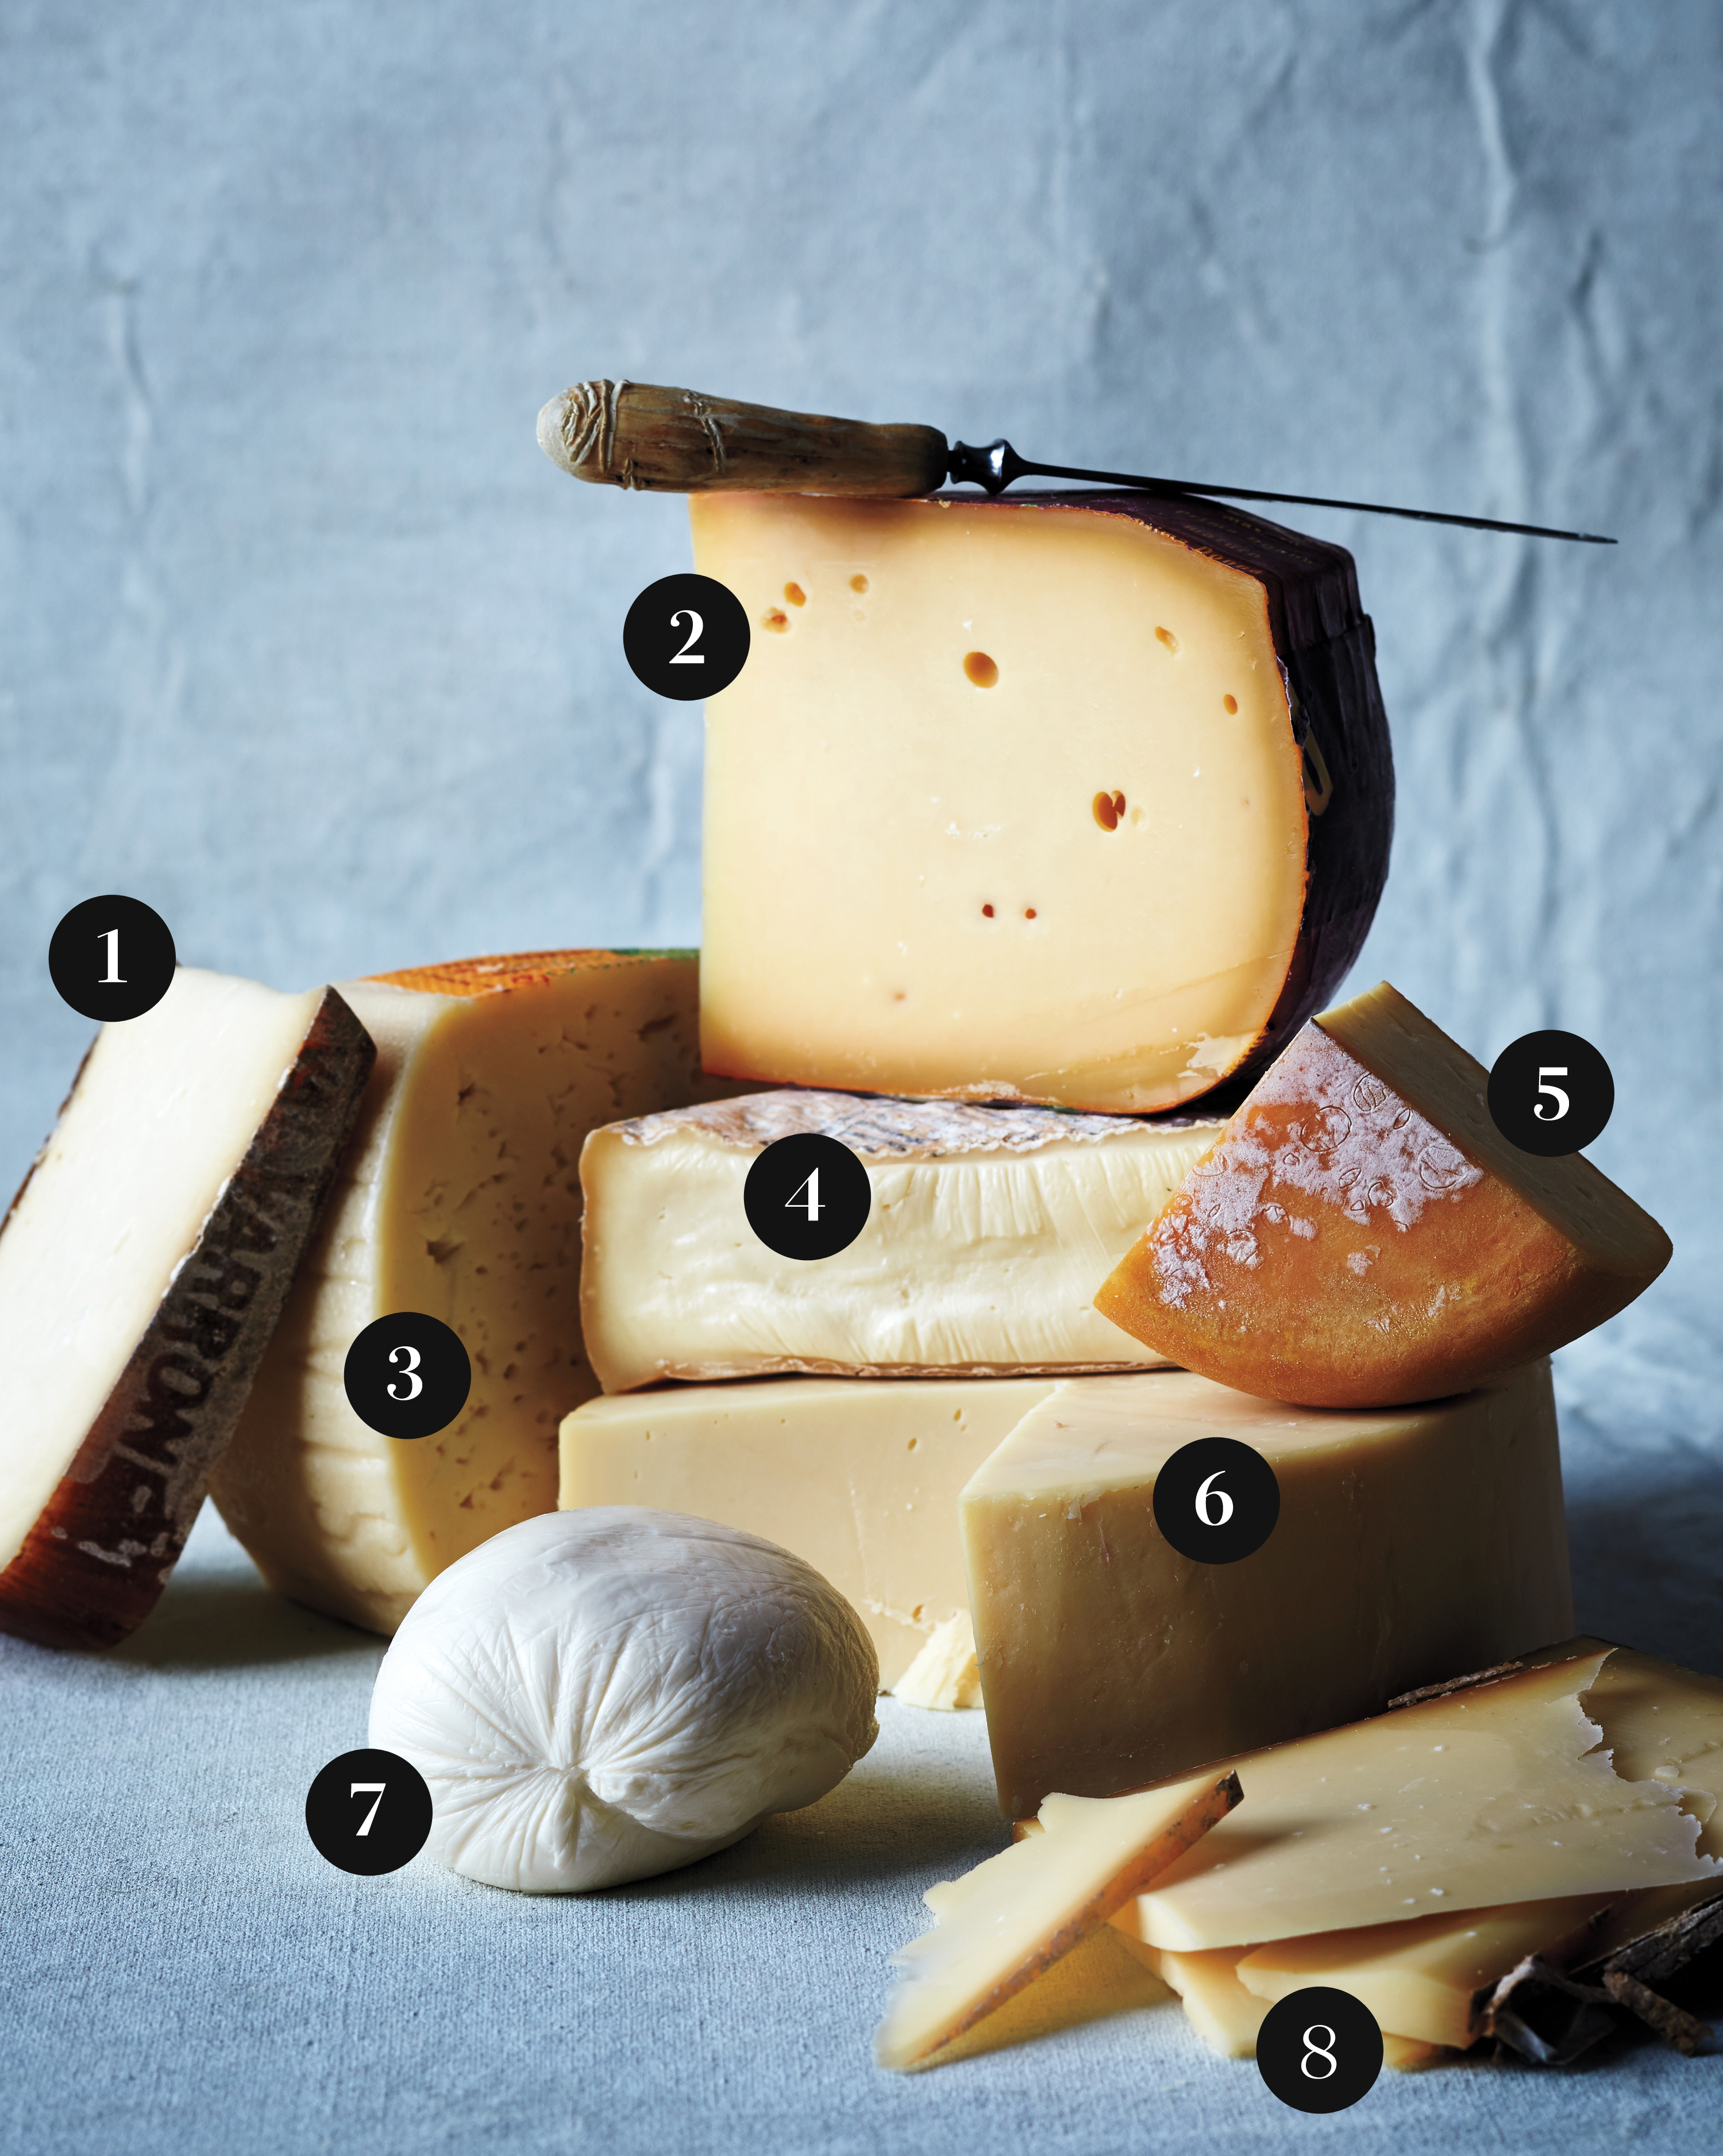 numbered-cheese-glossary-v2-d111633-0215.jpg